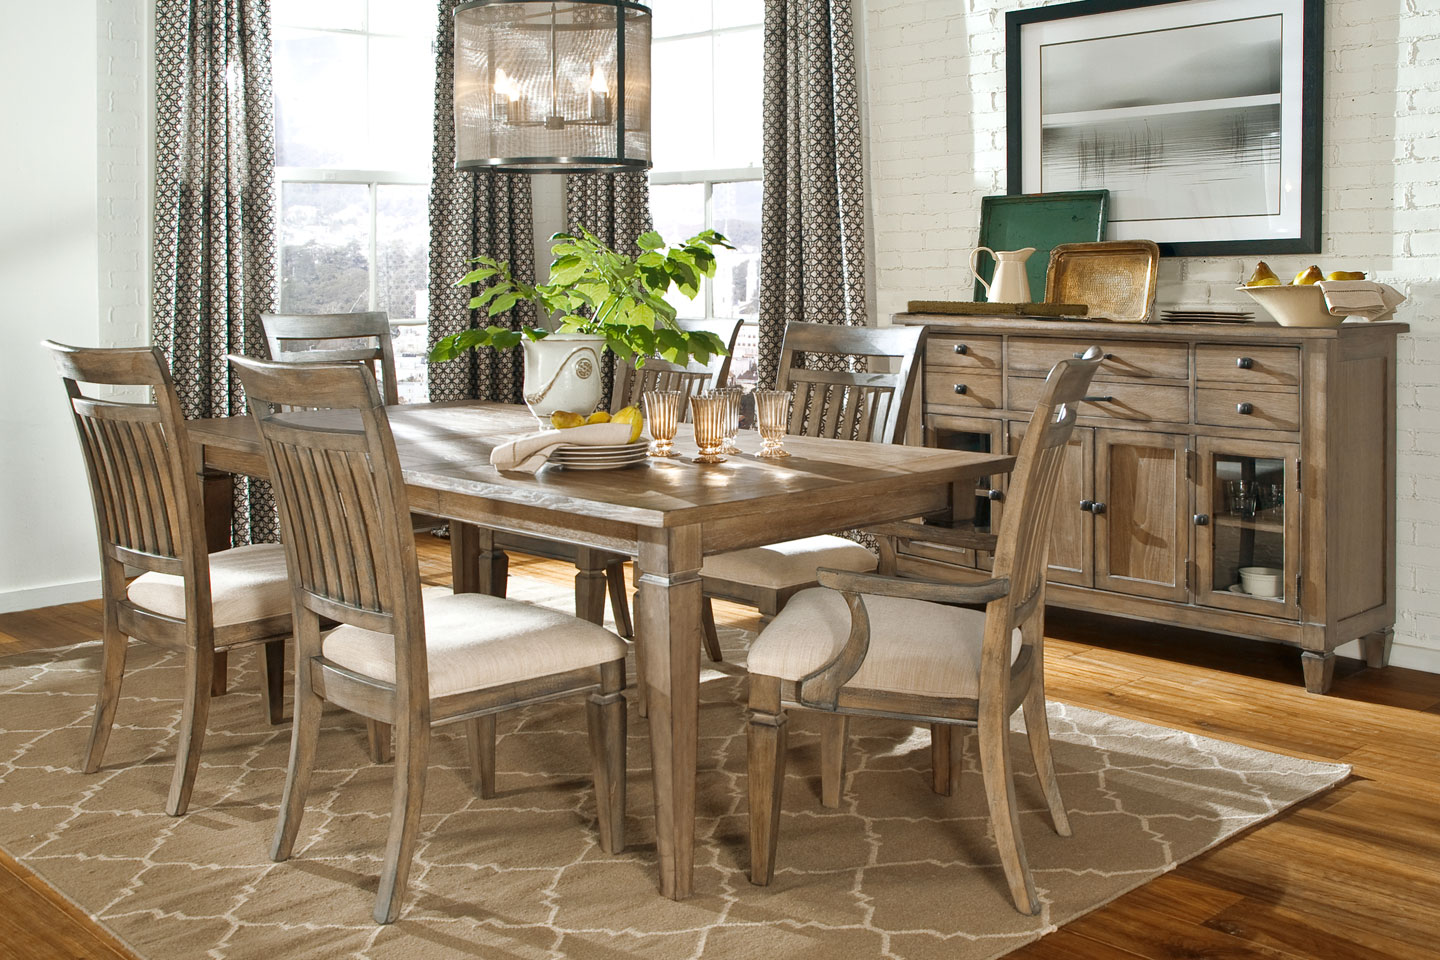 Gavin rustic formal dining room set fine dining furniture for Breakfast room furniture